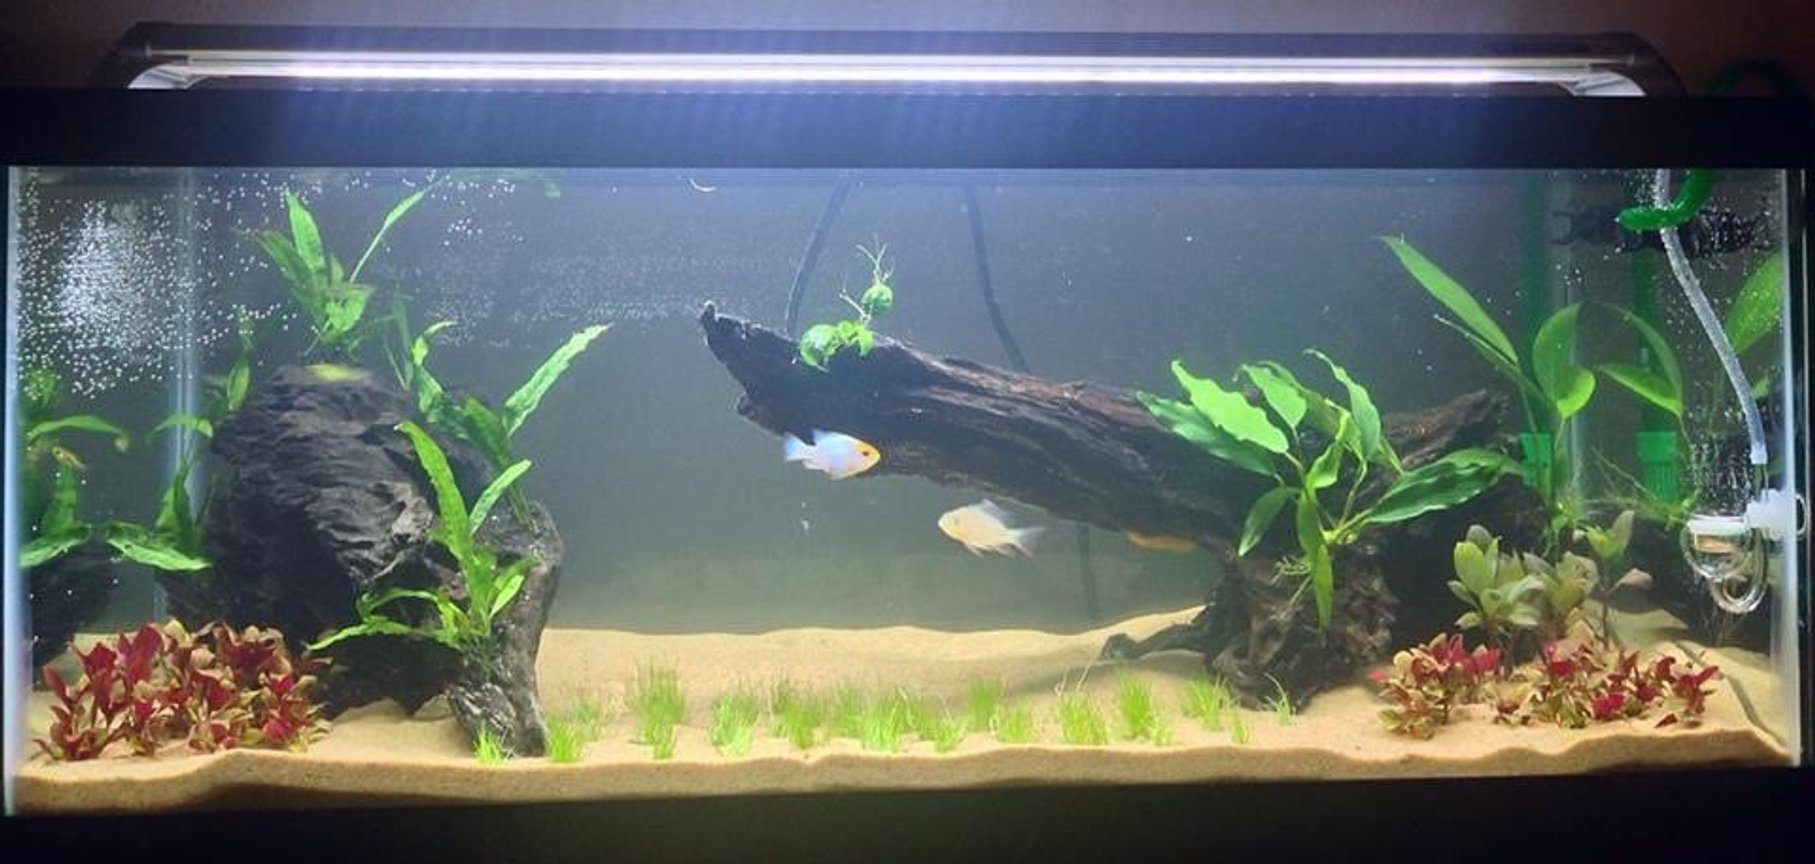 20 gallons freshwater fish tank (mostly fish and non-living decorations) - This is a new 20G long and it is a work in progress. This tank has co2, plant fertilizers, a canister filter, fuseray lighting, etc.